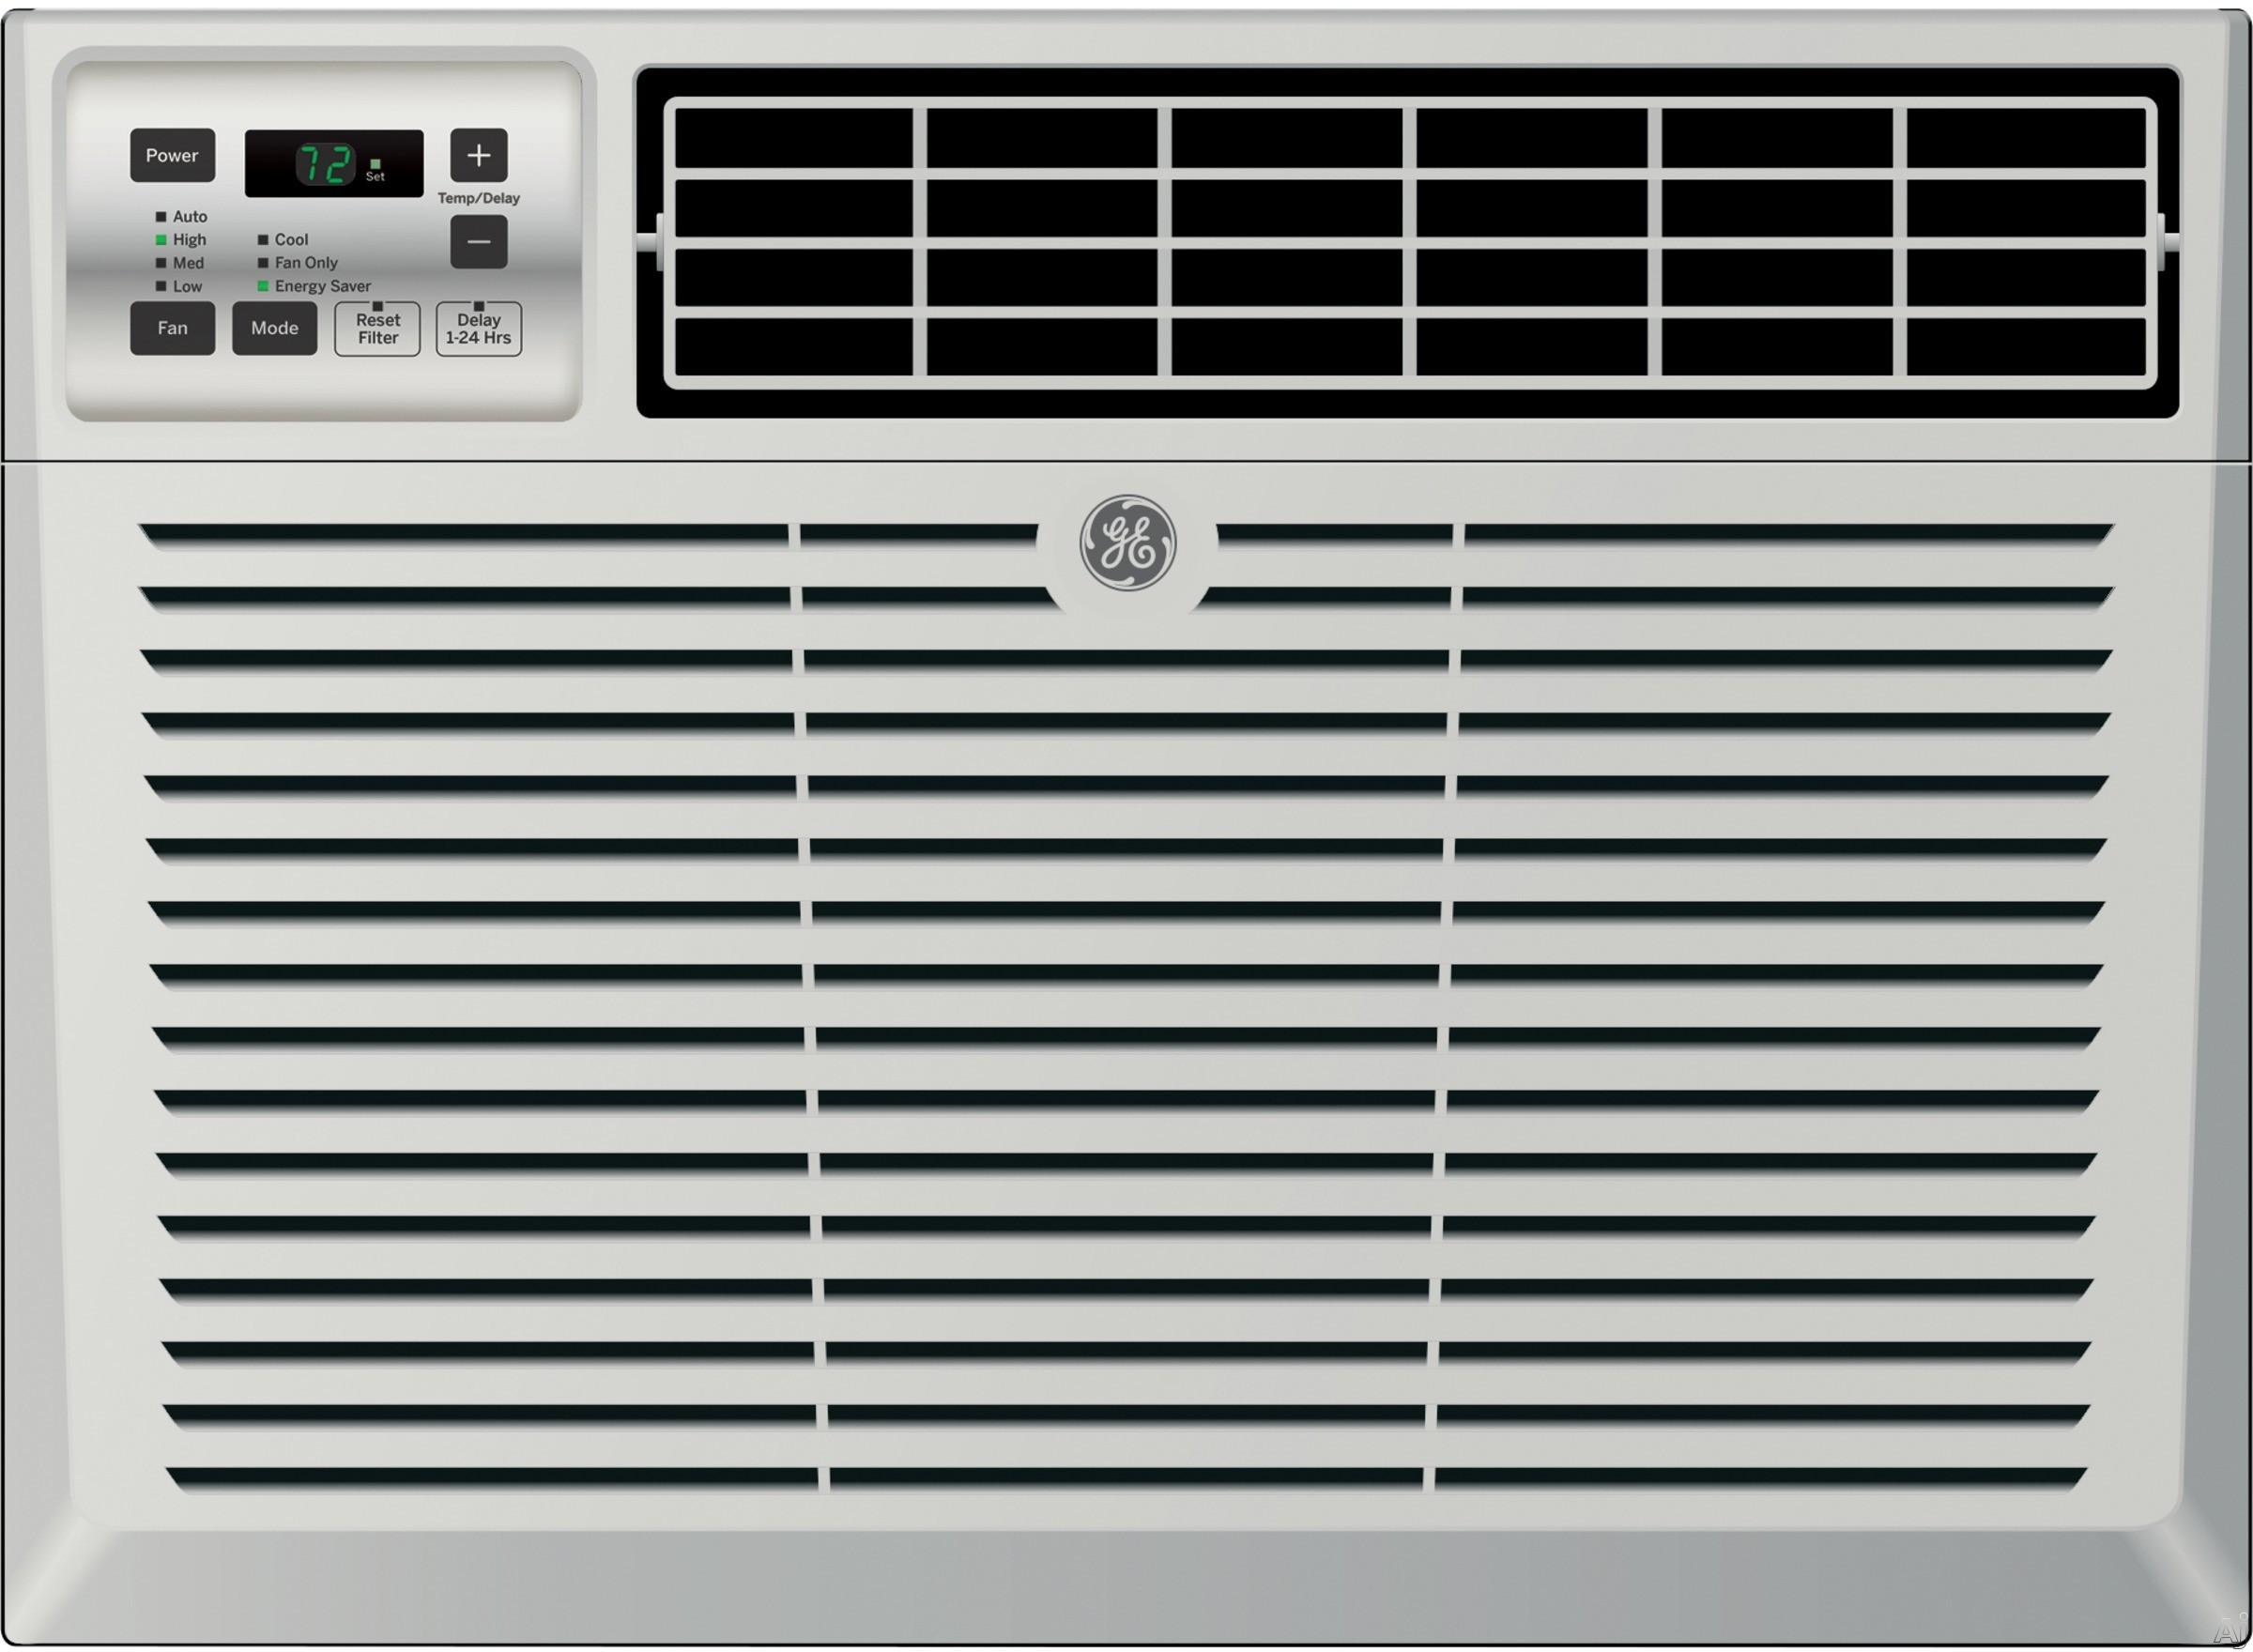 GE AED08LV 8,200 BTU Room Air Conditioner with 230 CFM, 12.2 EER, 1.9 Pts/Hr Dehumidification, 3 Fan Speeds, Electronic Digital Thermostat with Remote, Deluxe Quiet and ENERGY STAR Qualification